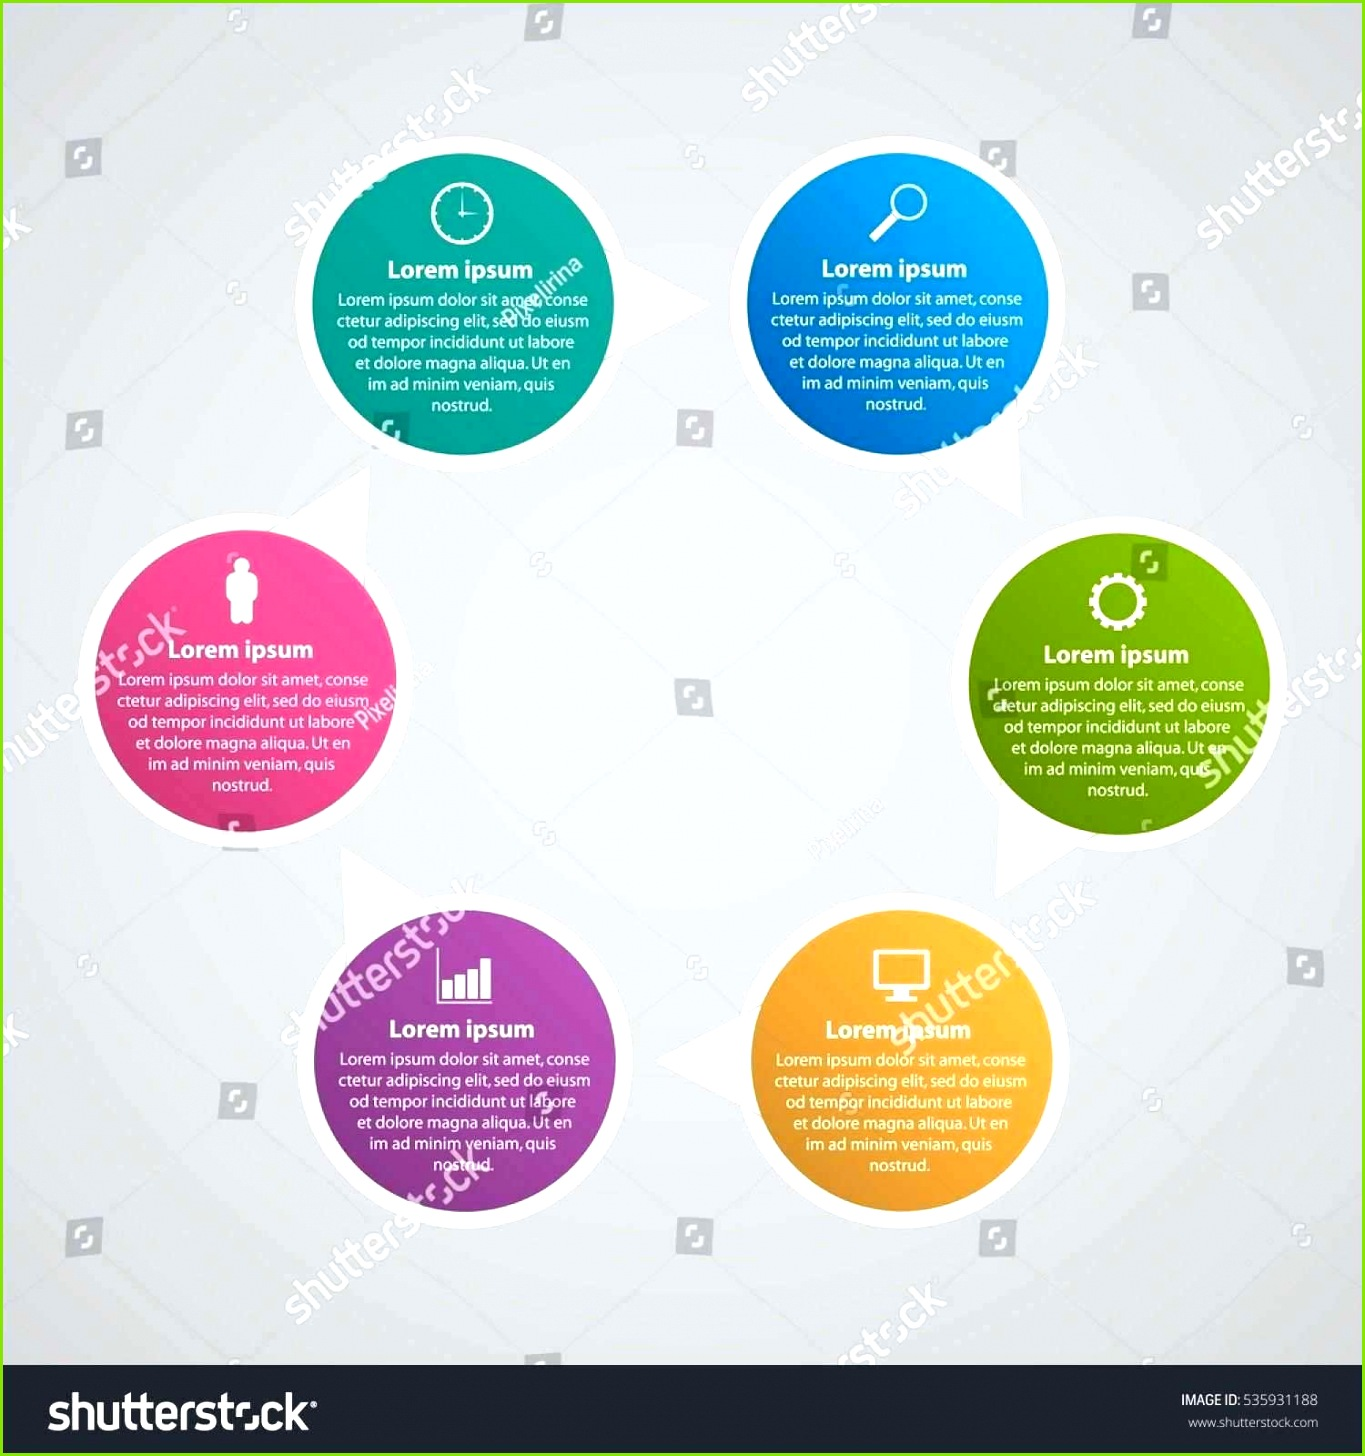 Best Looking Powerpoint Presentation Templates Free Original Powerpoint Presentation Template Size Awesome Business Presentation Powerpoint Template